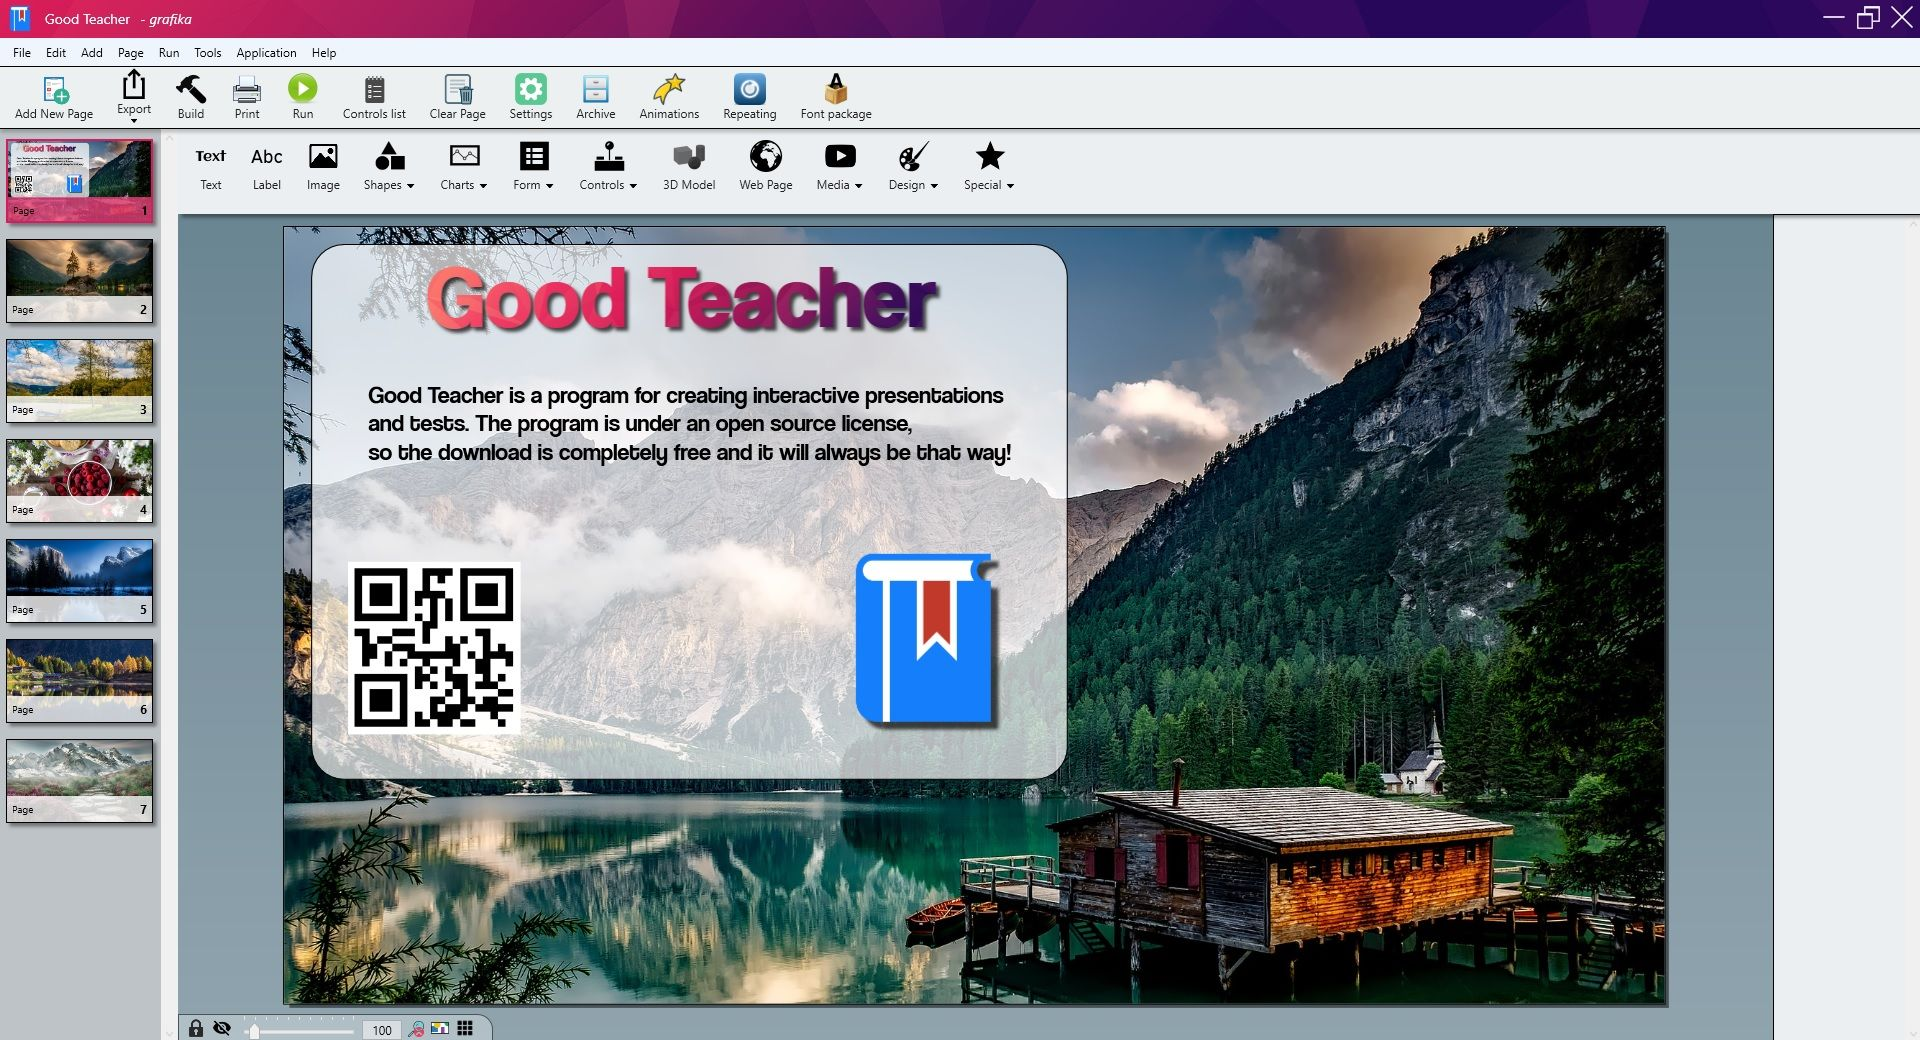 Good Teacher Image - Preview